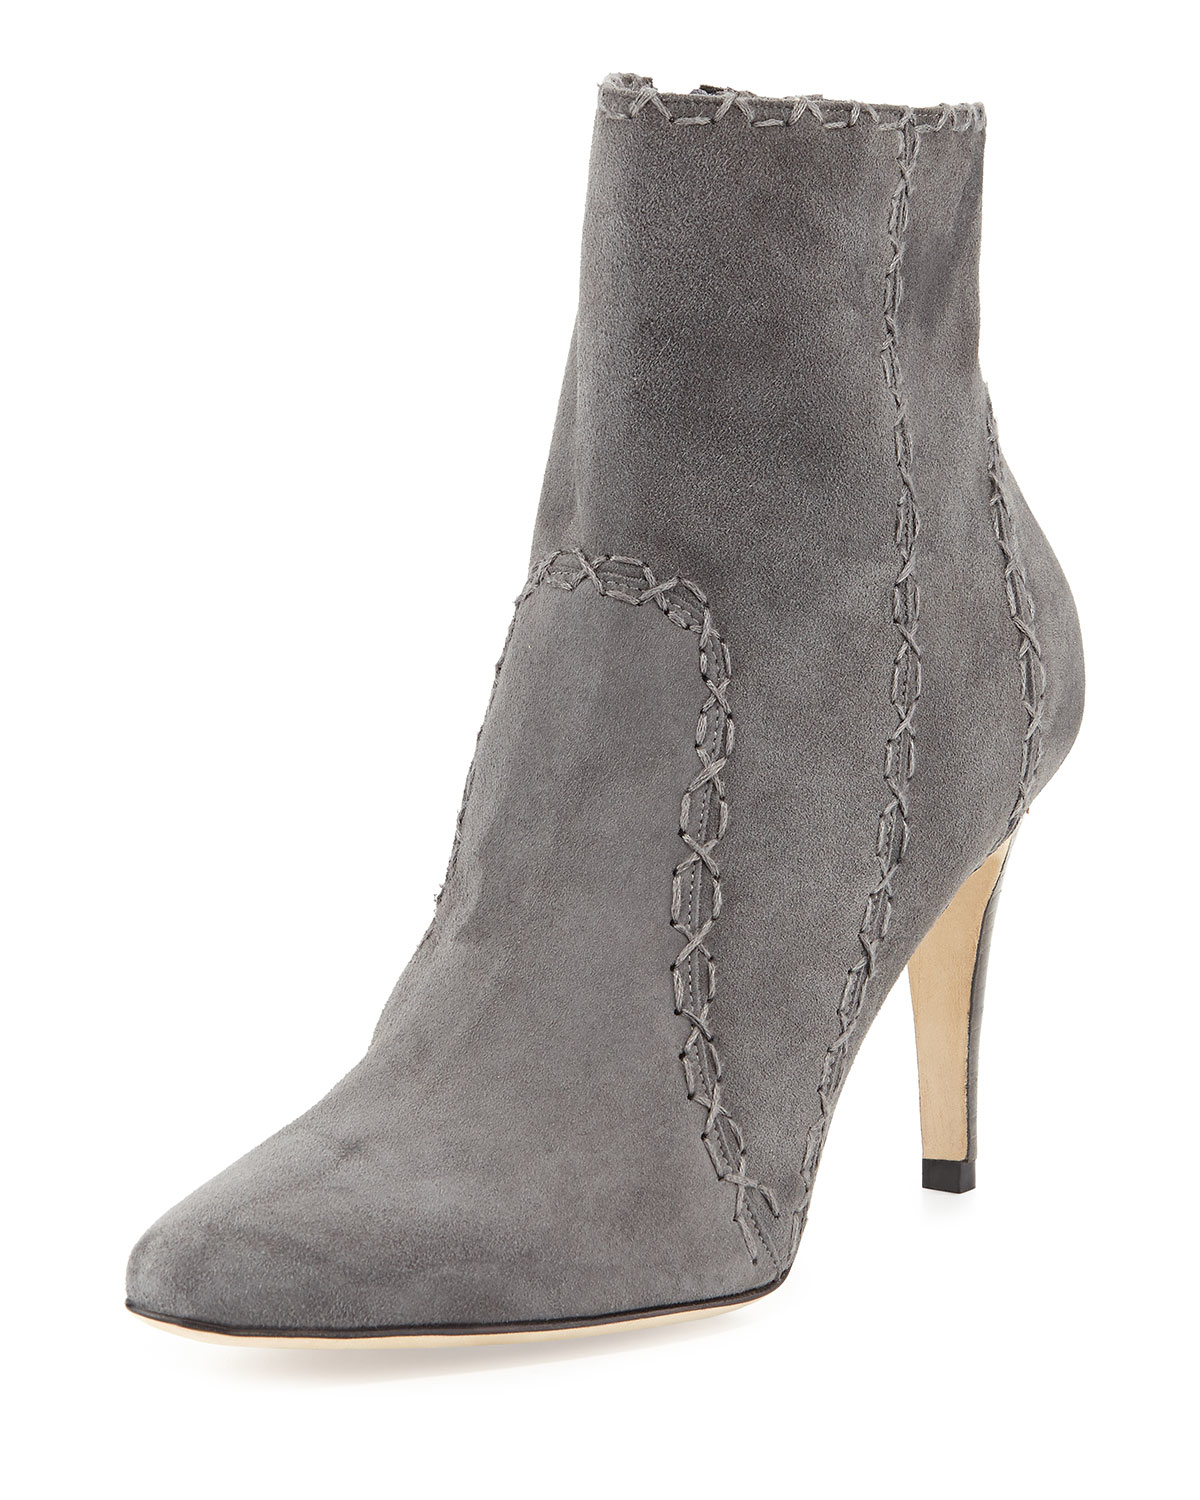 Manolo blahnik Rubio Cross-Stitched Suede Ankle Boots in ...